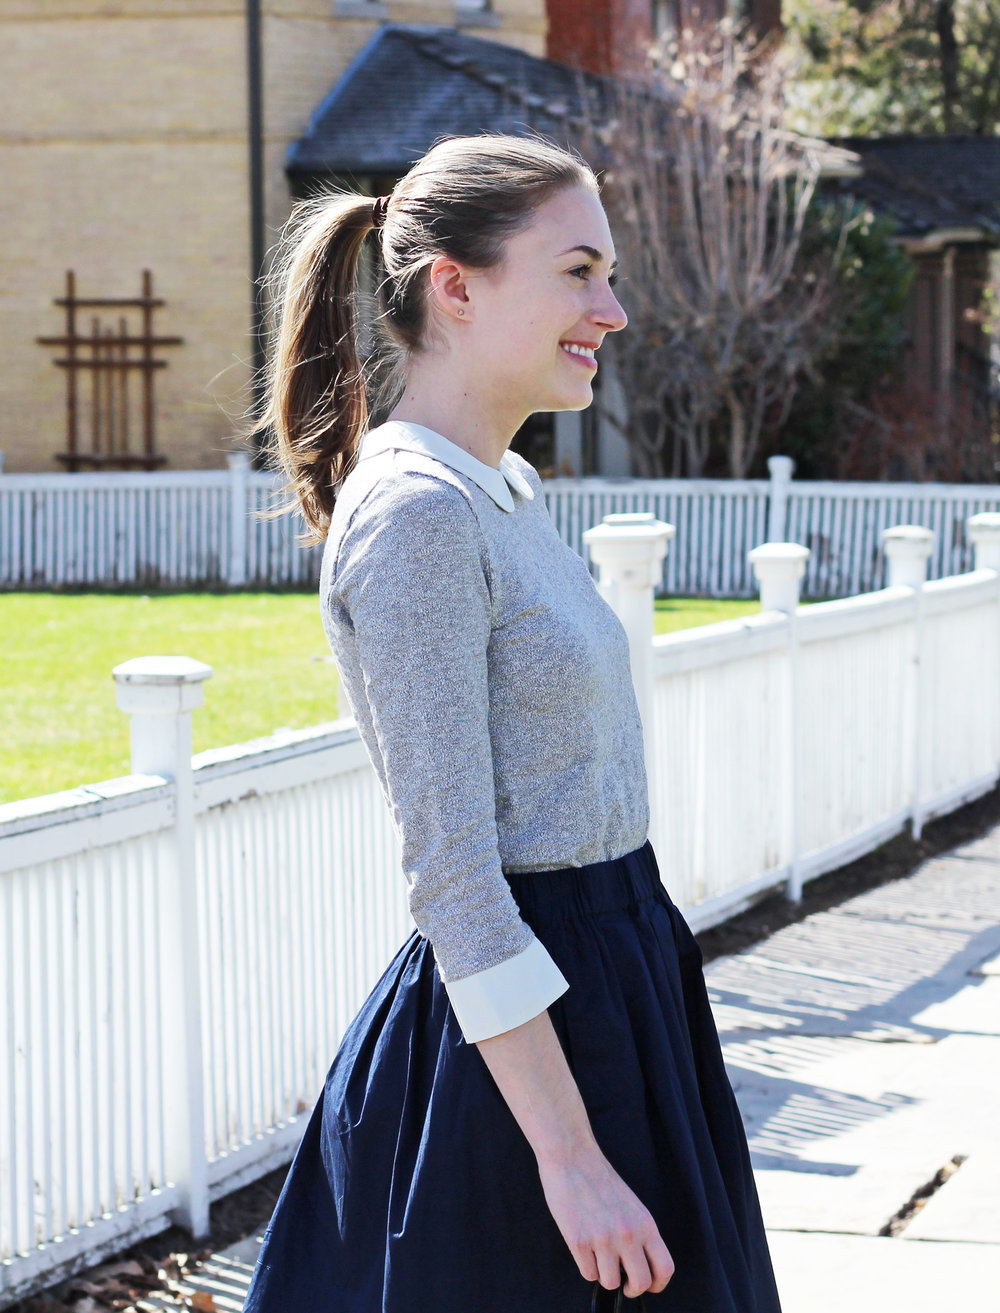 Grey Peter Pan collar top outfit with navy skirt — Cotton Cashmere Cat Hair